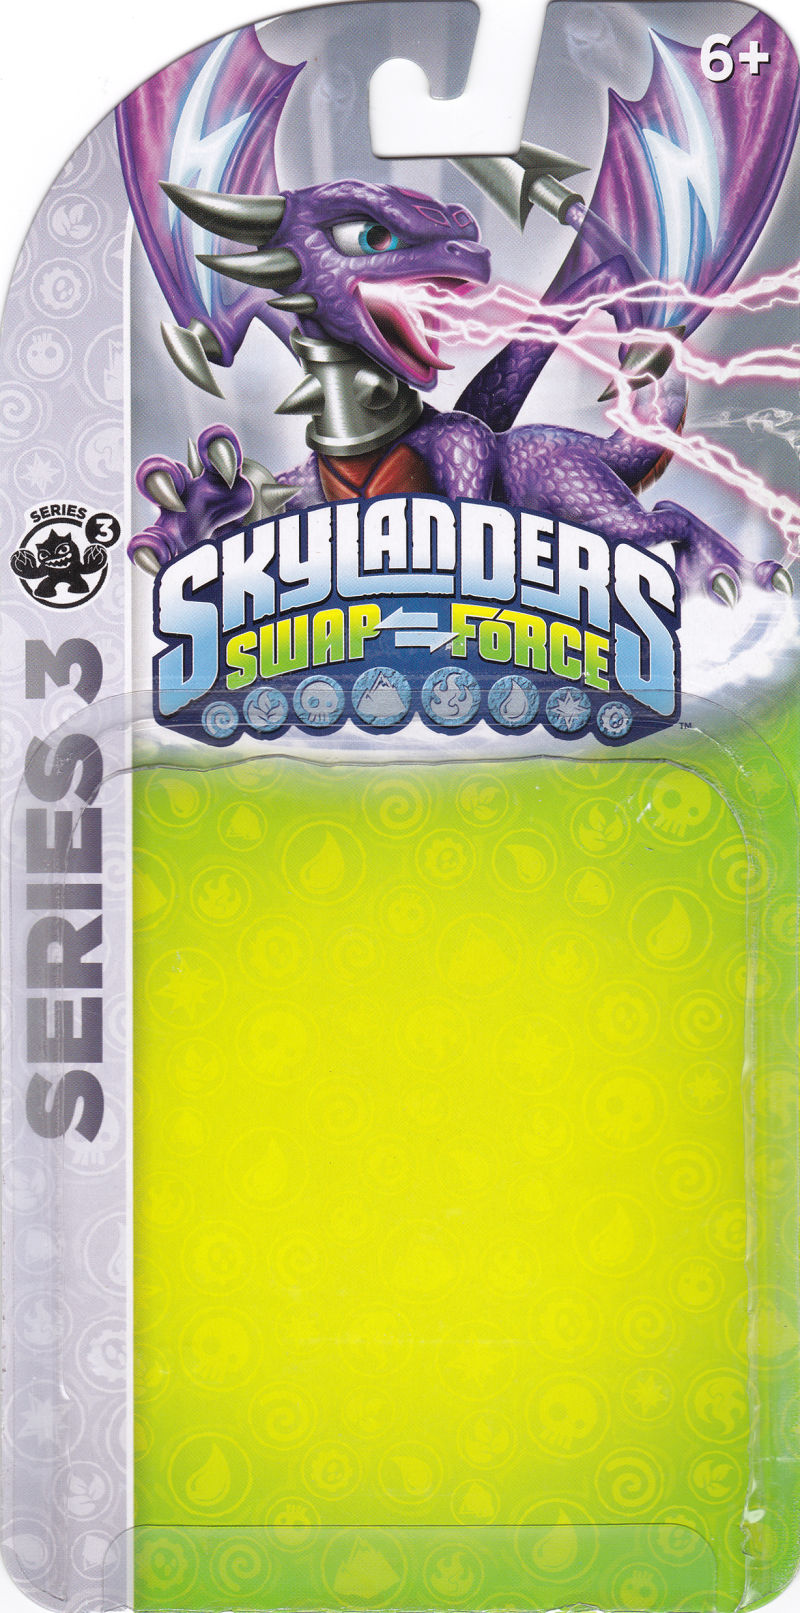 Skylanders: Swap Force - Phantom Cynder (Series 3) Nintendo 3DS Front Cover